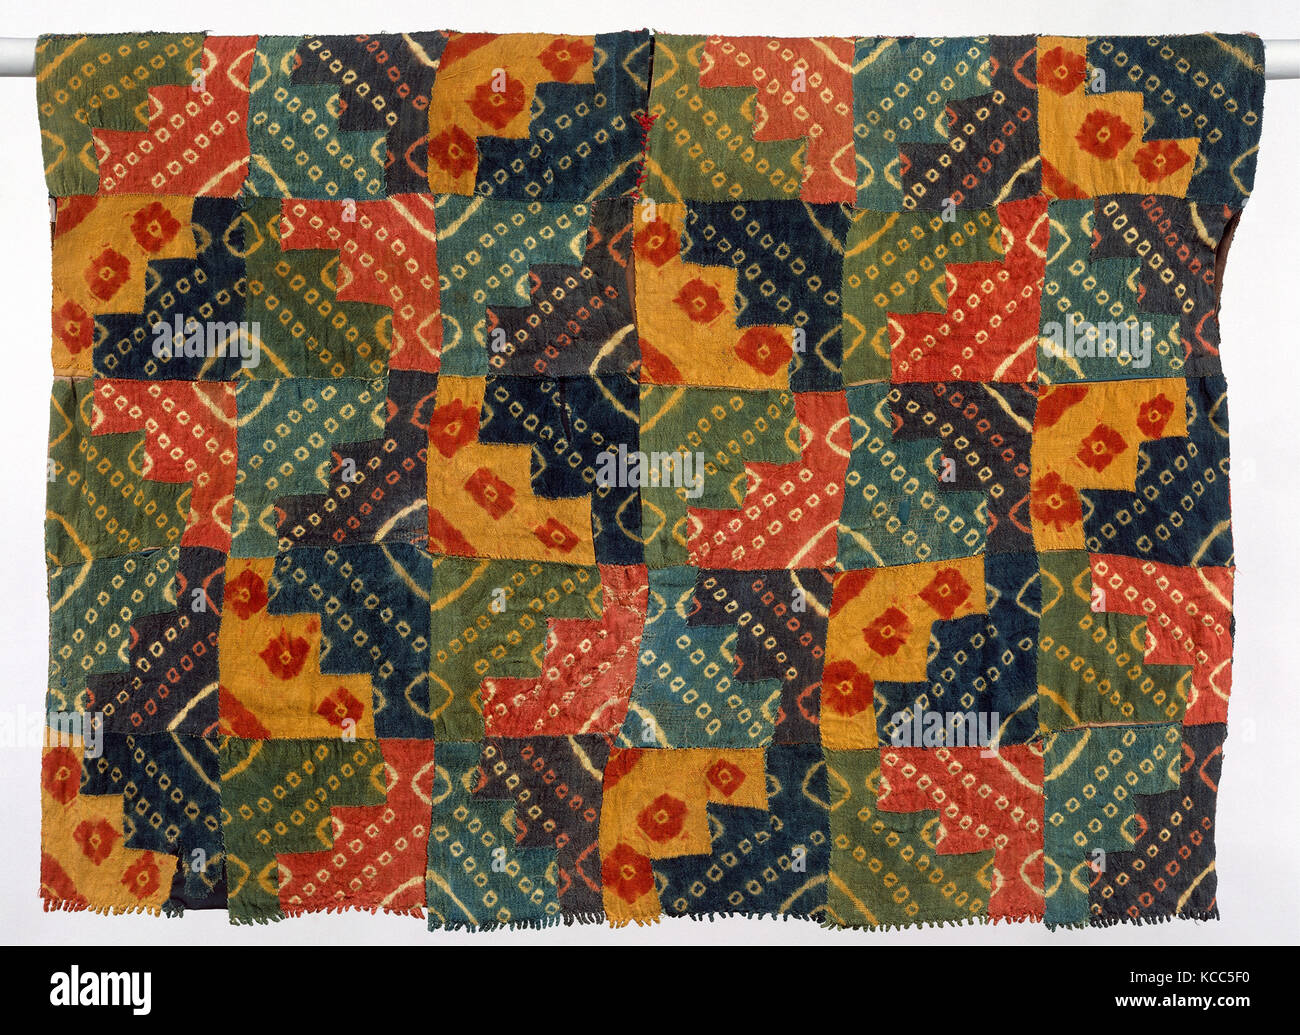 Tunic, 700–850, Peru, Wari, Camelid hair, H. 34 x W. 46 in. (86.4 x 116.8 cm), Textiles-Woven, The so-called patchwork - Stock Image